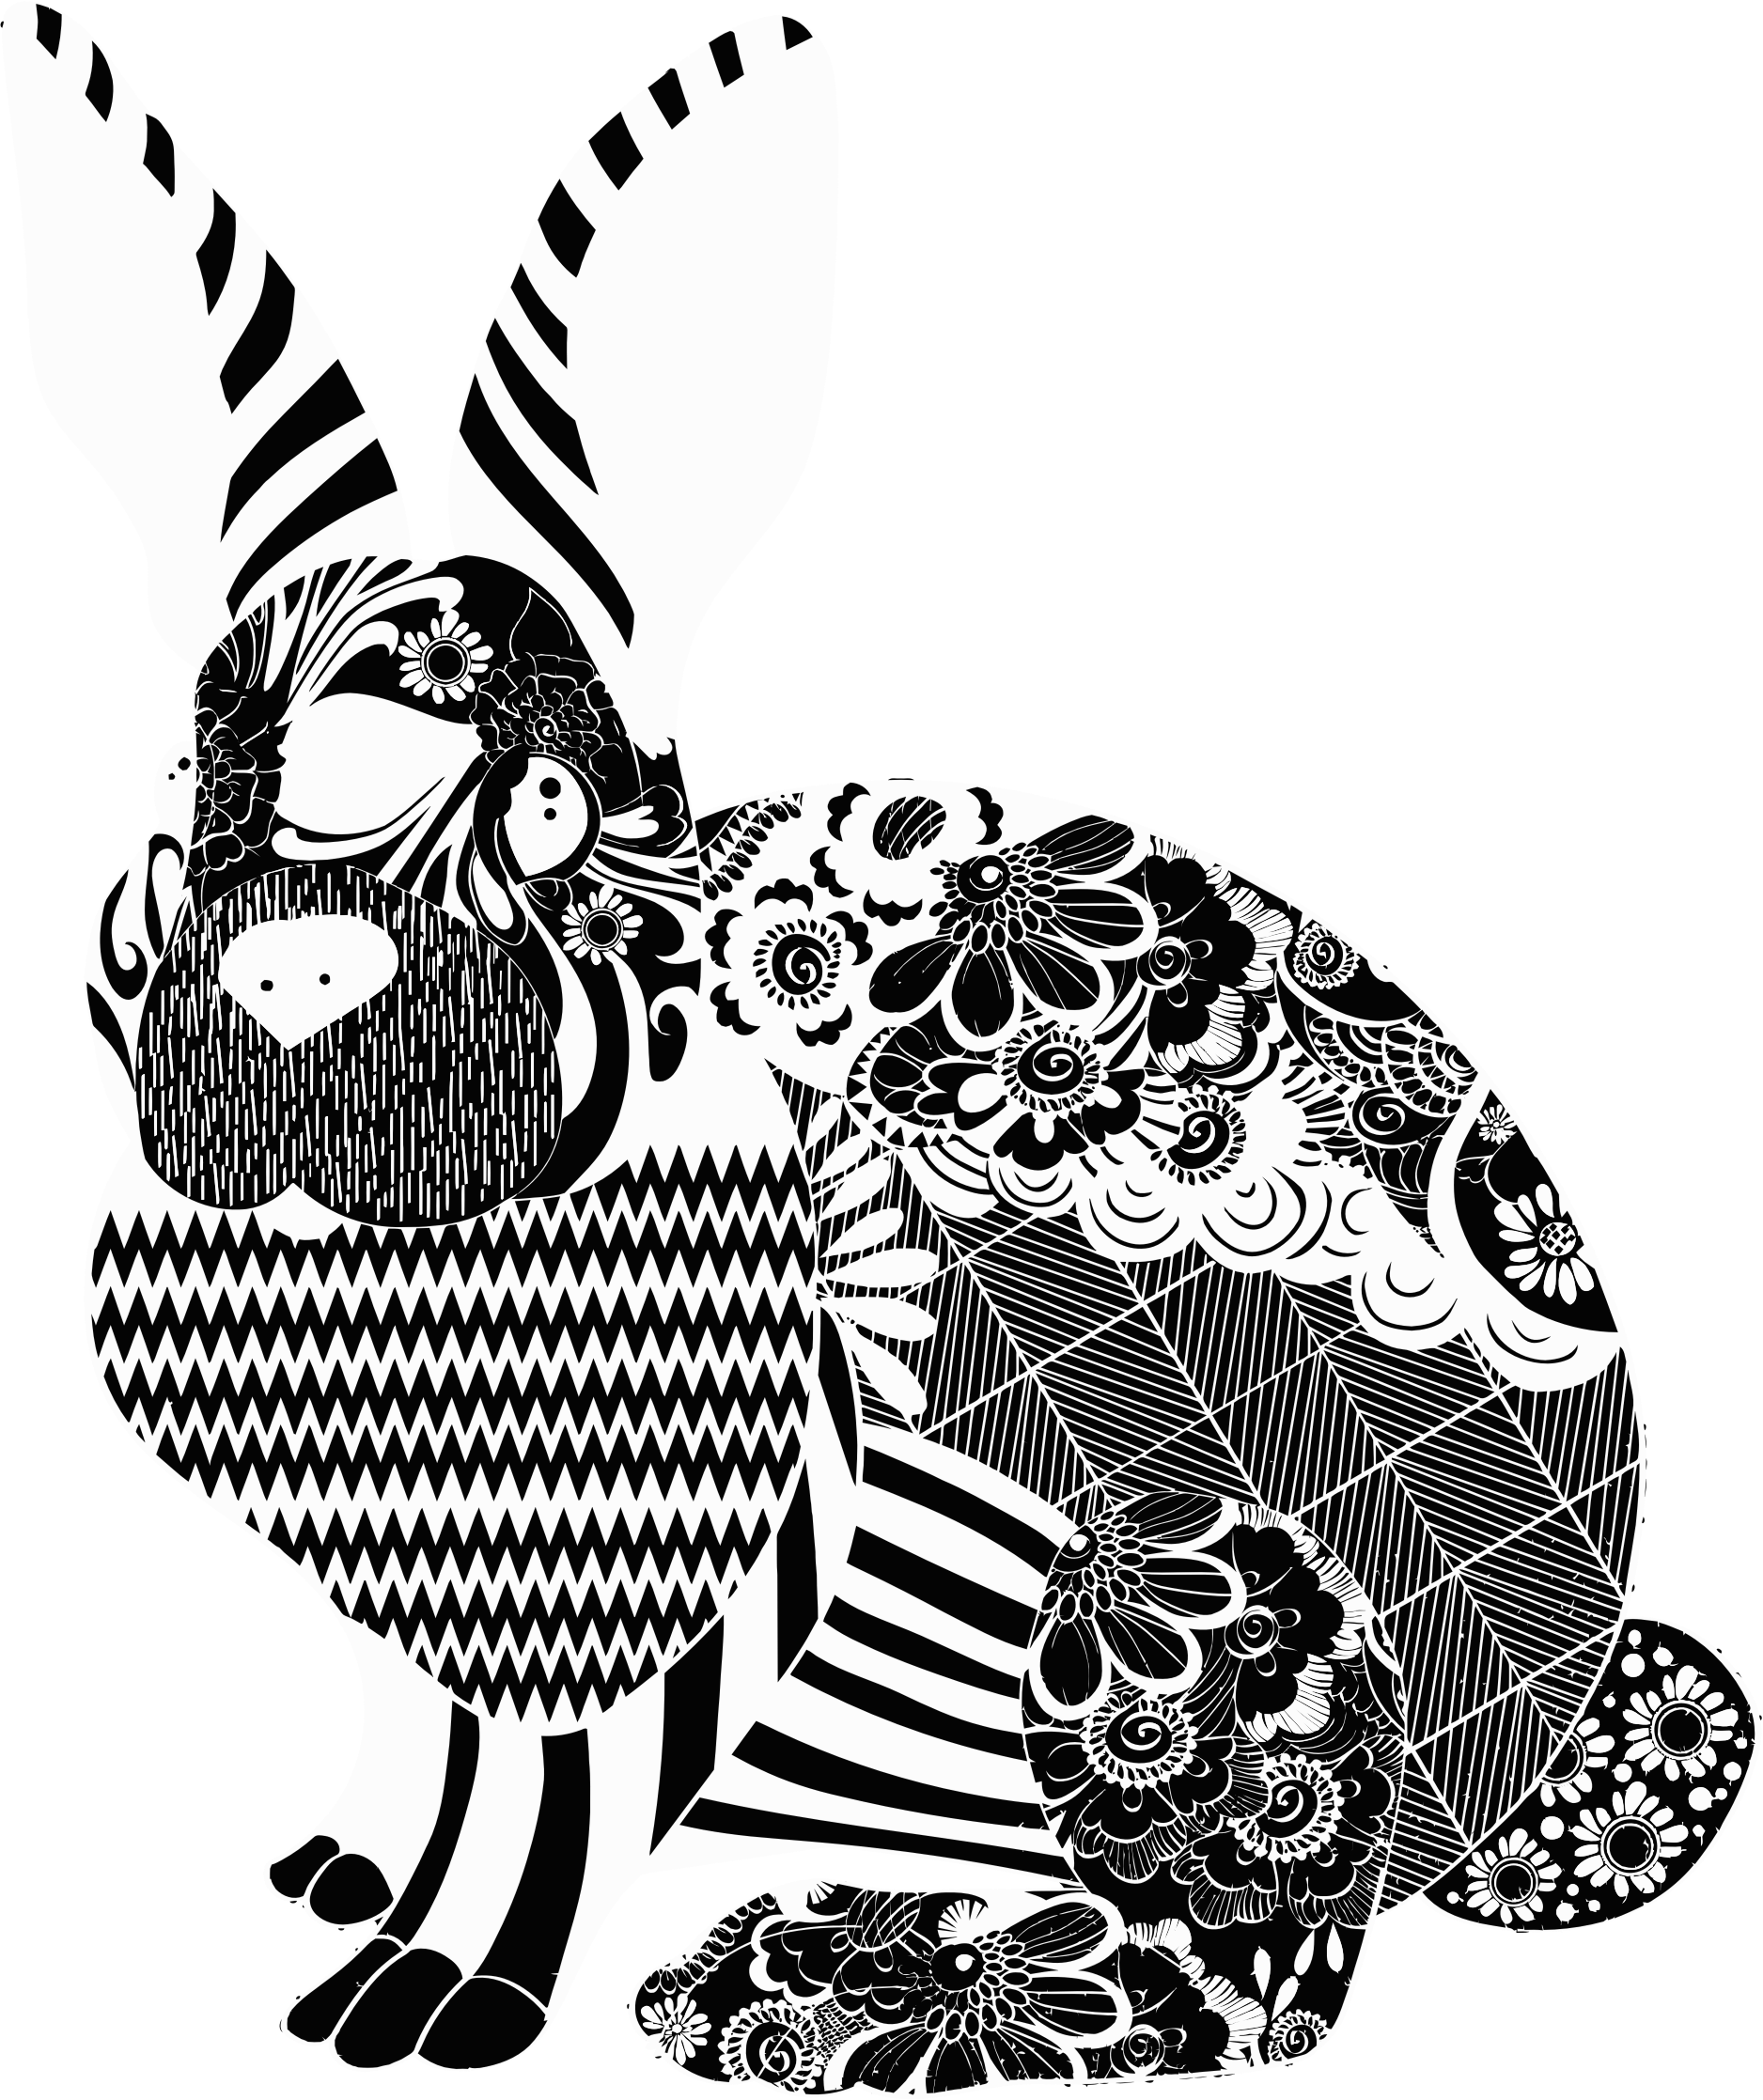 Floral Rabbit Silhouette Variation 2 by GDJ